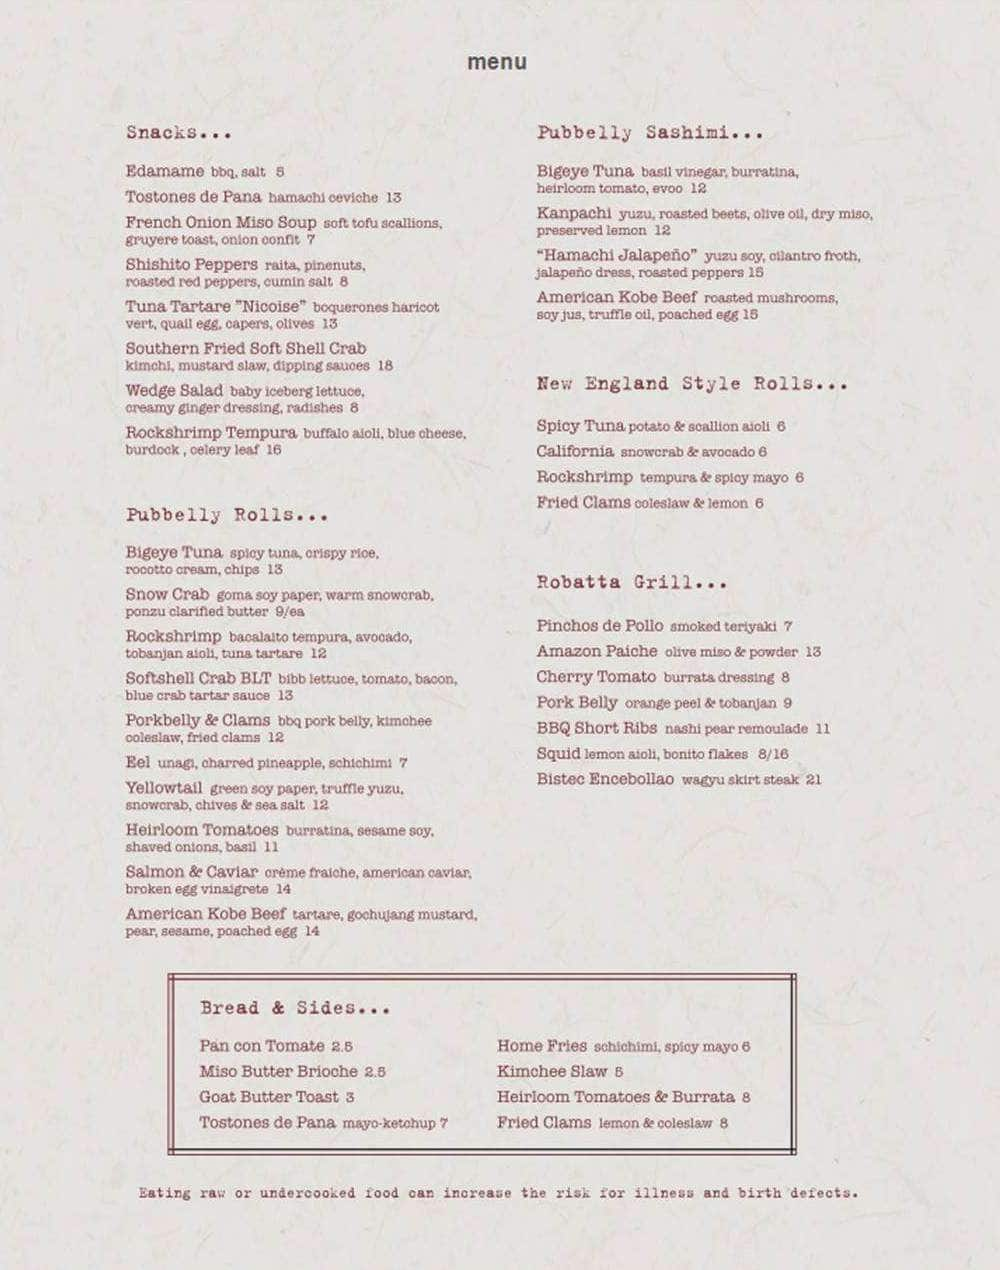 Pubbelly Sushi Menu